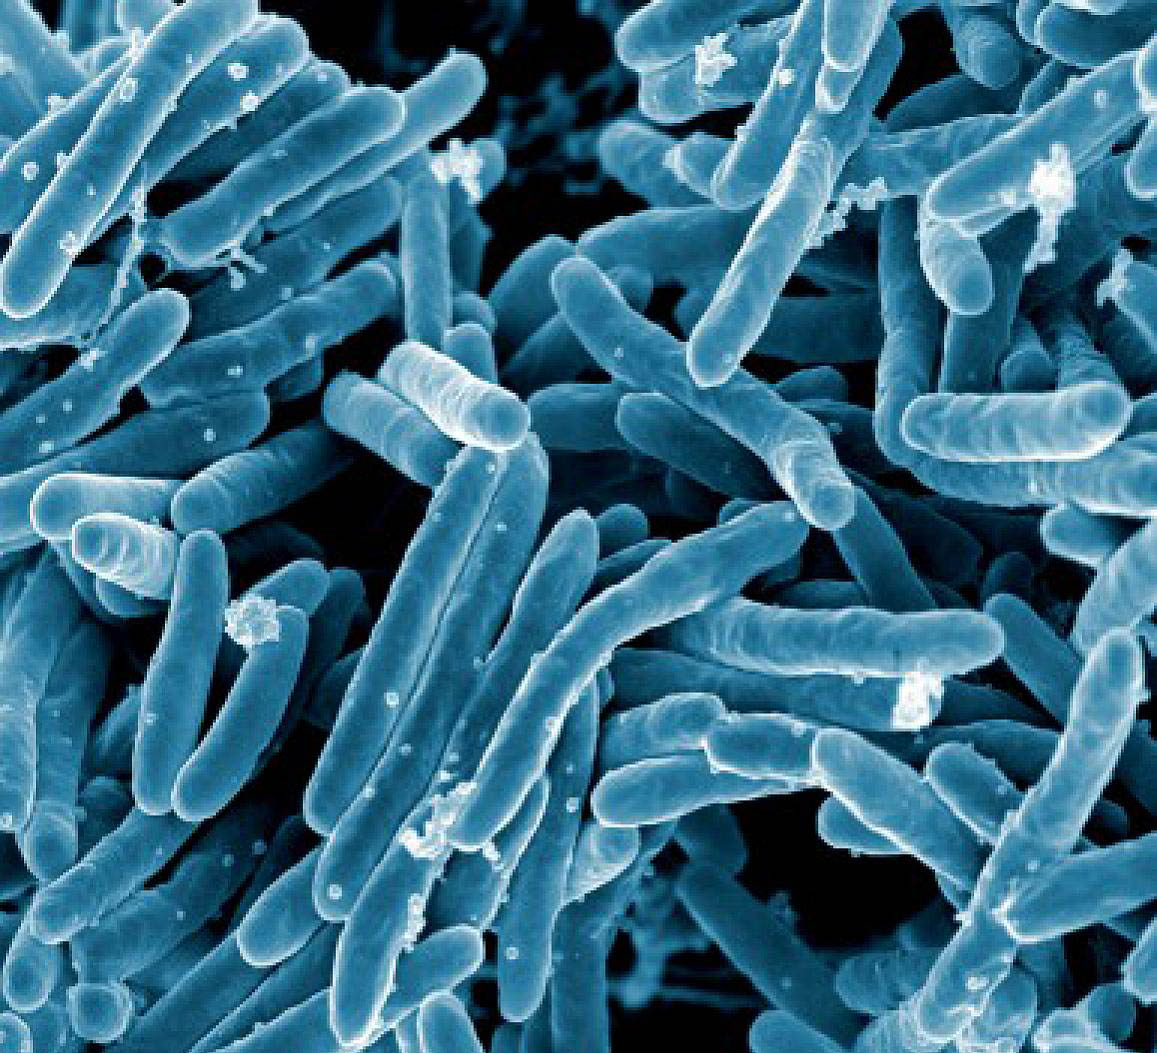 Mycobacterium tuberculosis bacteri, the cause of tuberculosis